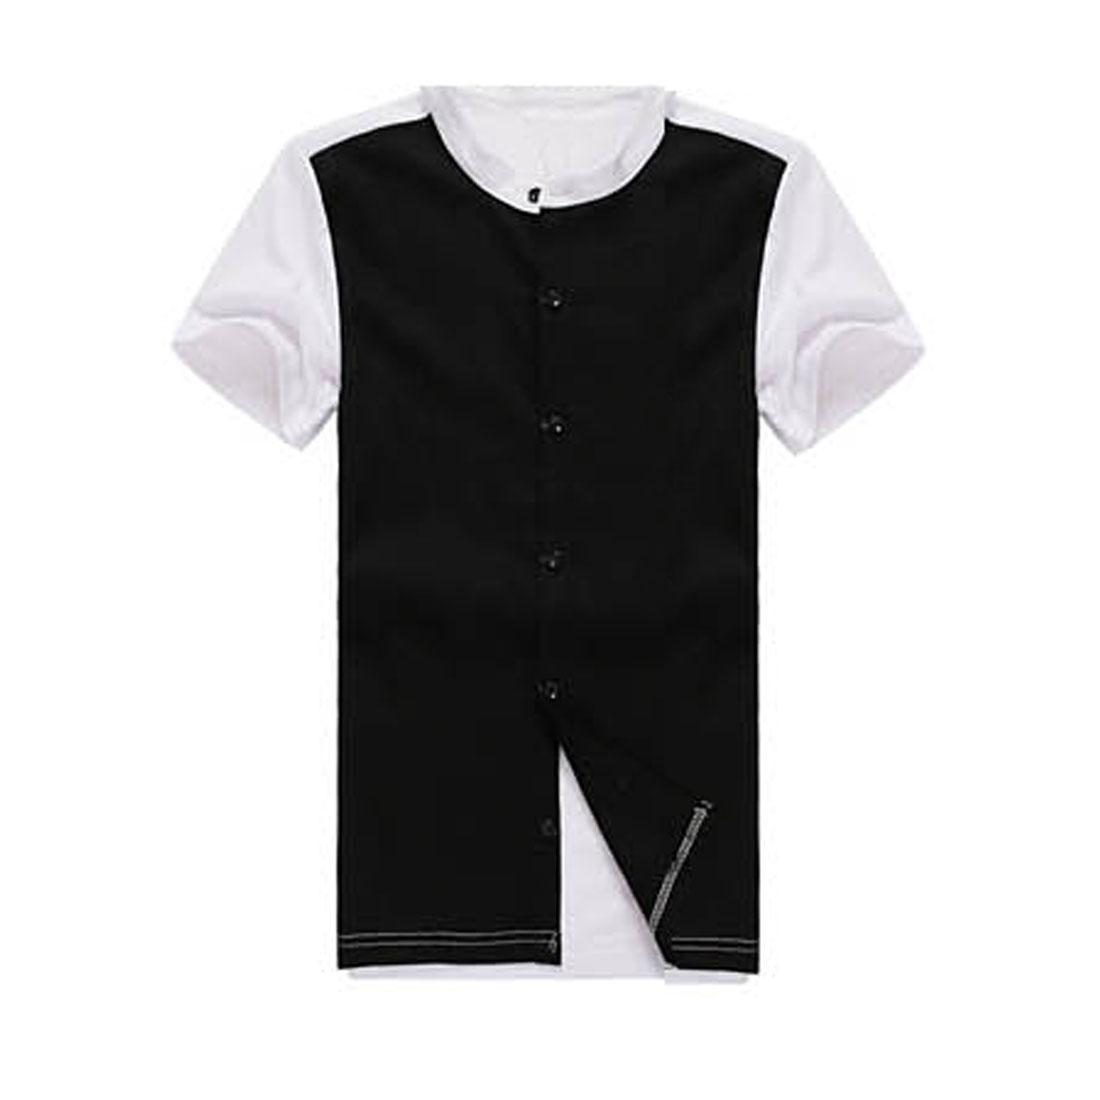 Mens New Style Crew Neck Short Sleeve Button Down Splice Black White Shirt S